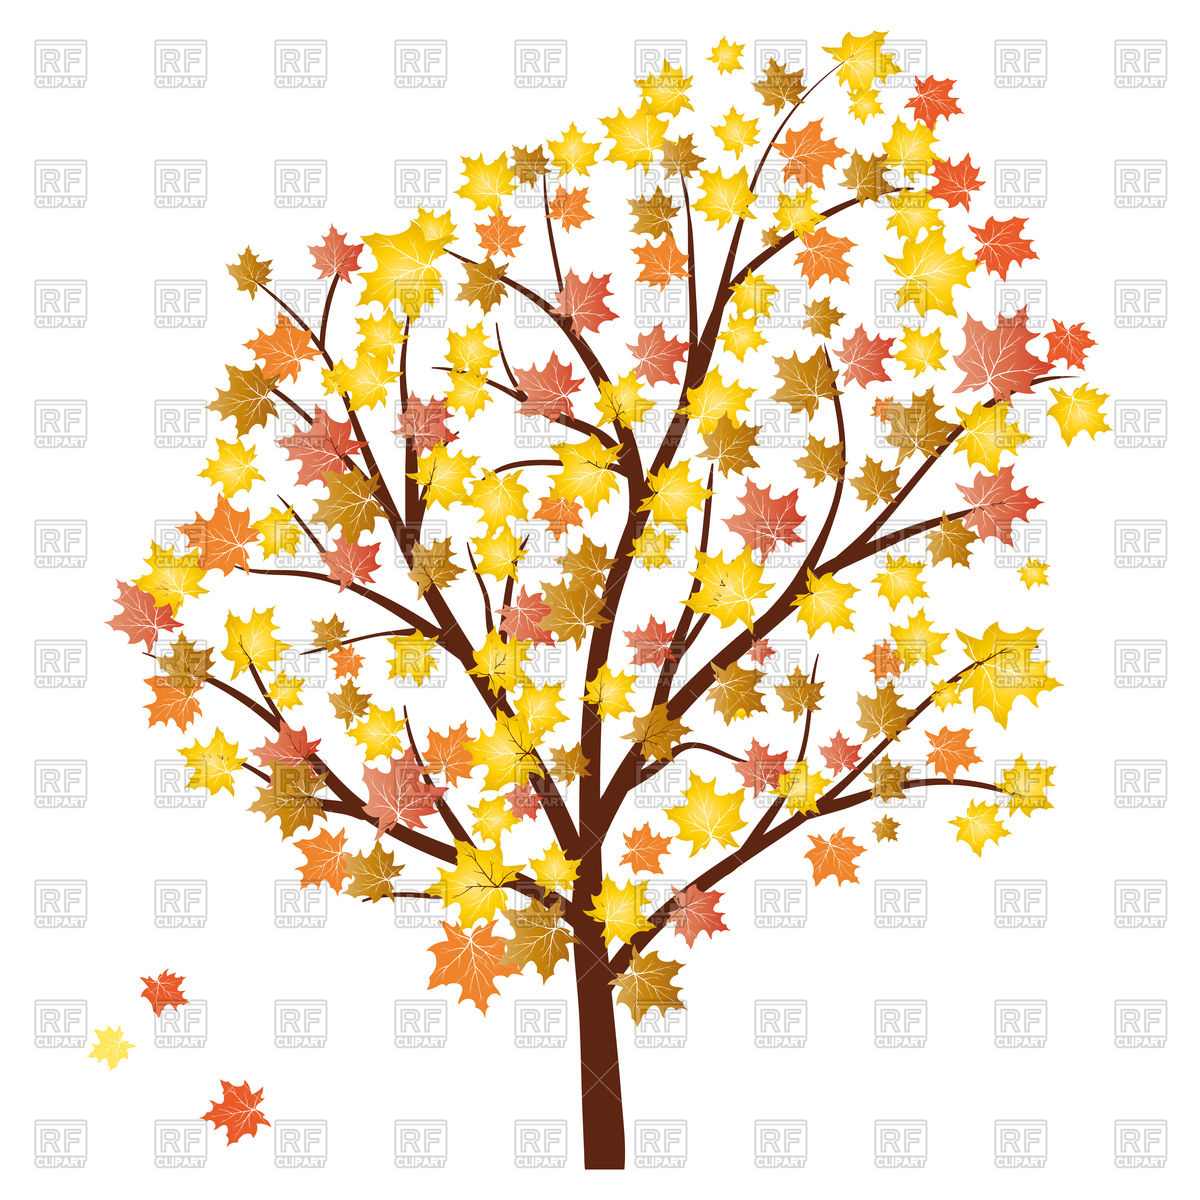 1200x1200 Autumn Maple Tree With Falling Leaves Royalty Free Vector Clip Art